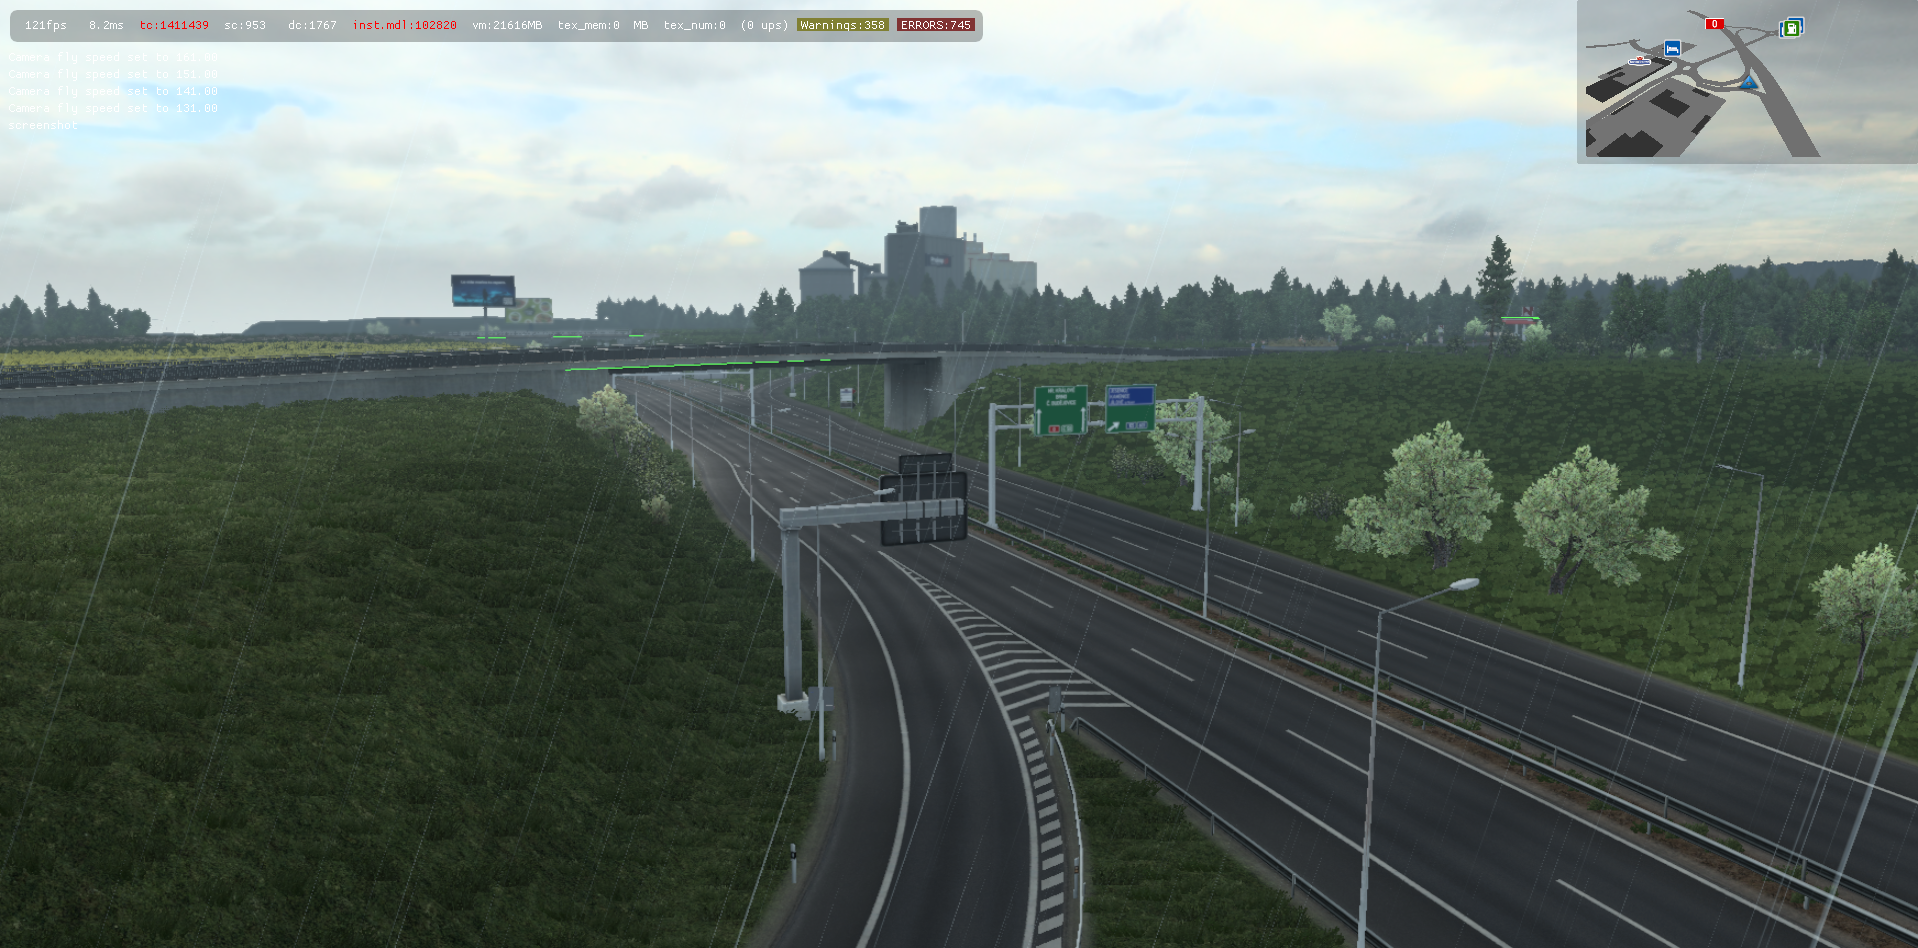 ets2_20210621_210947_00.png